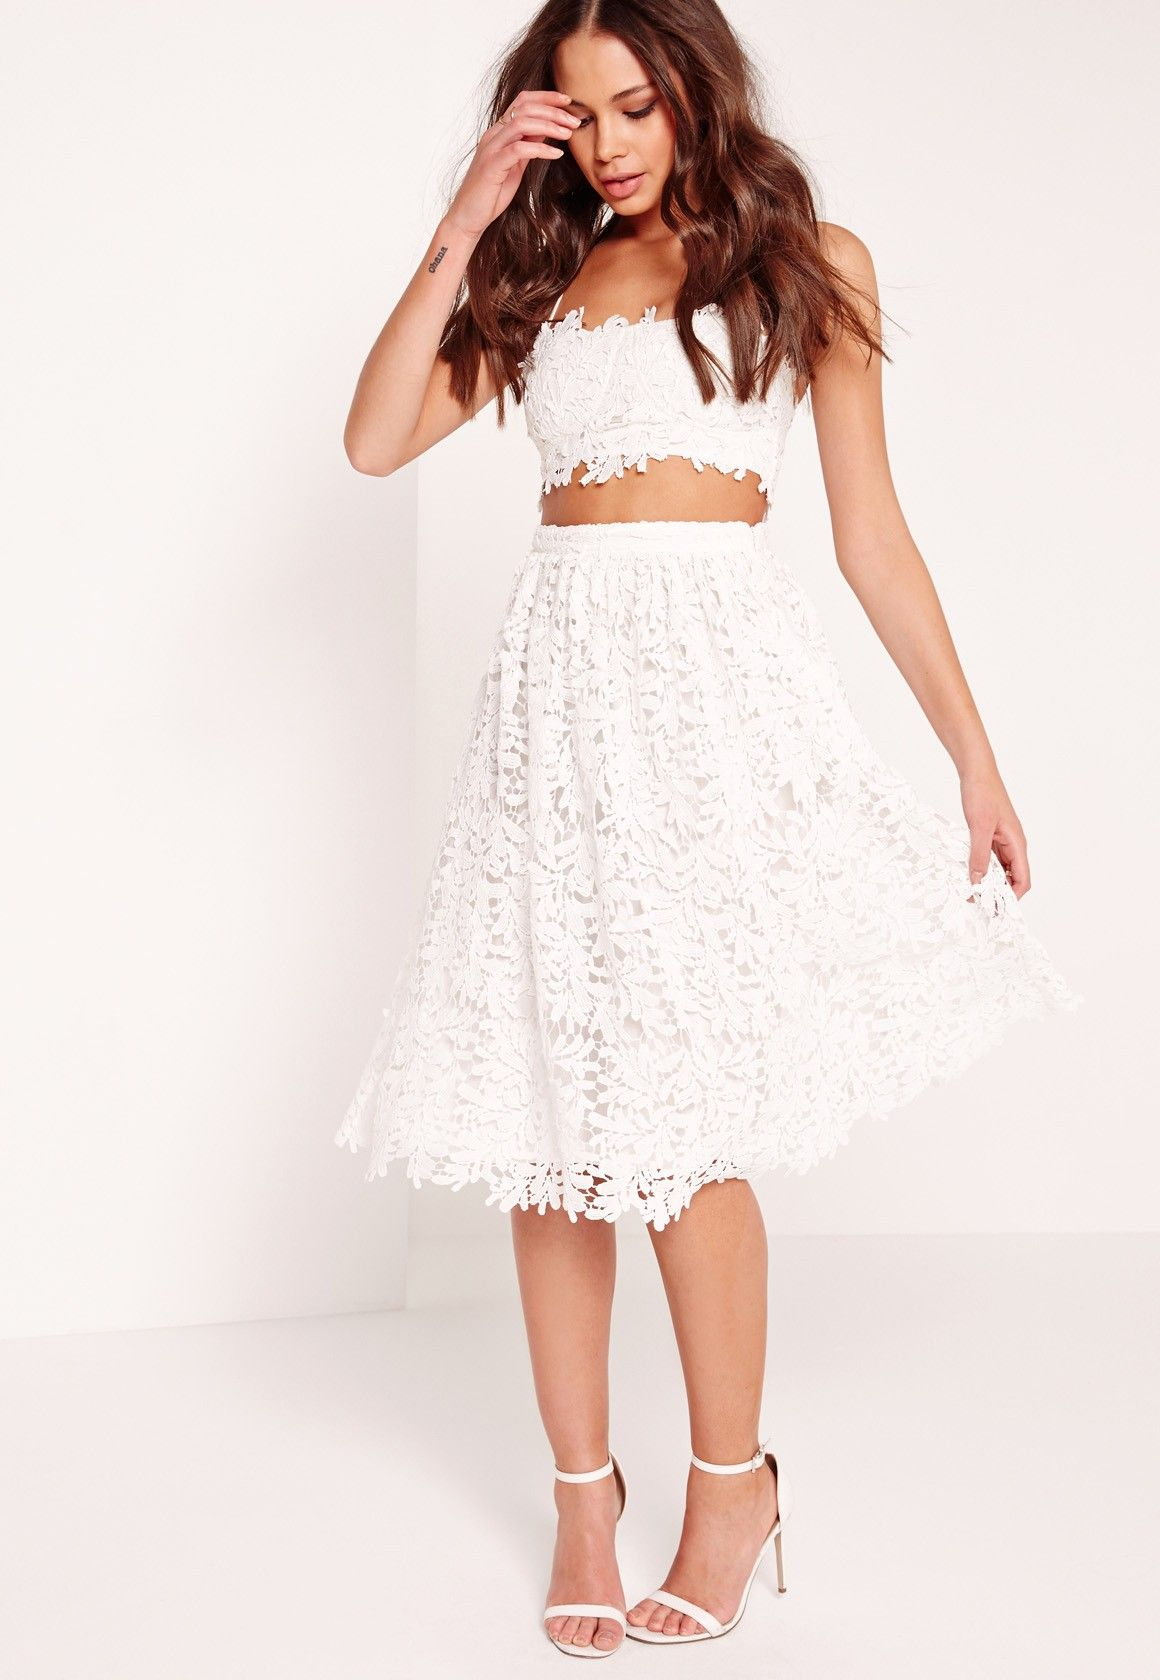 519ae2e42 Missguided - Crochet Lace Full Midi Skirt White | WISH List | Full ...